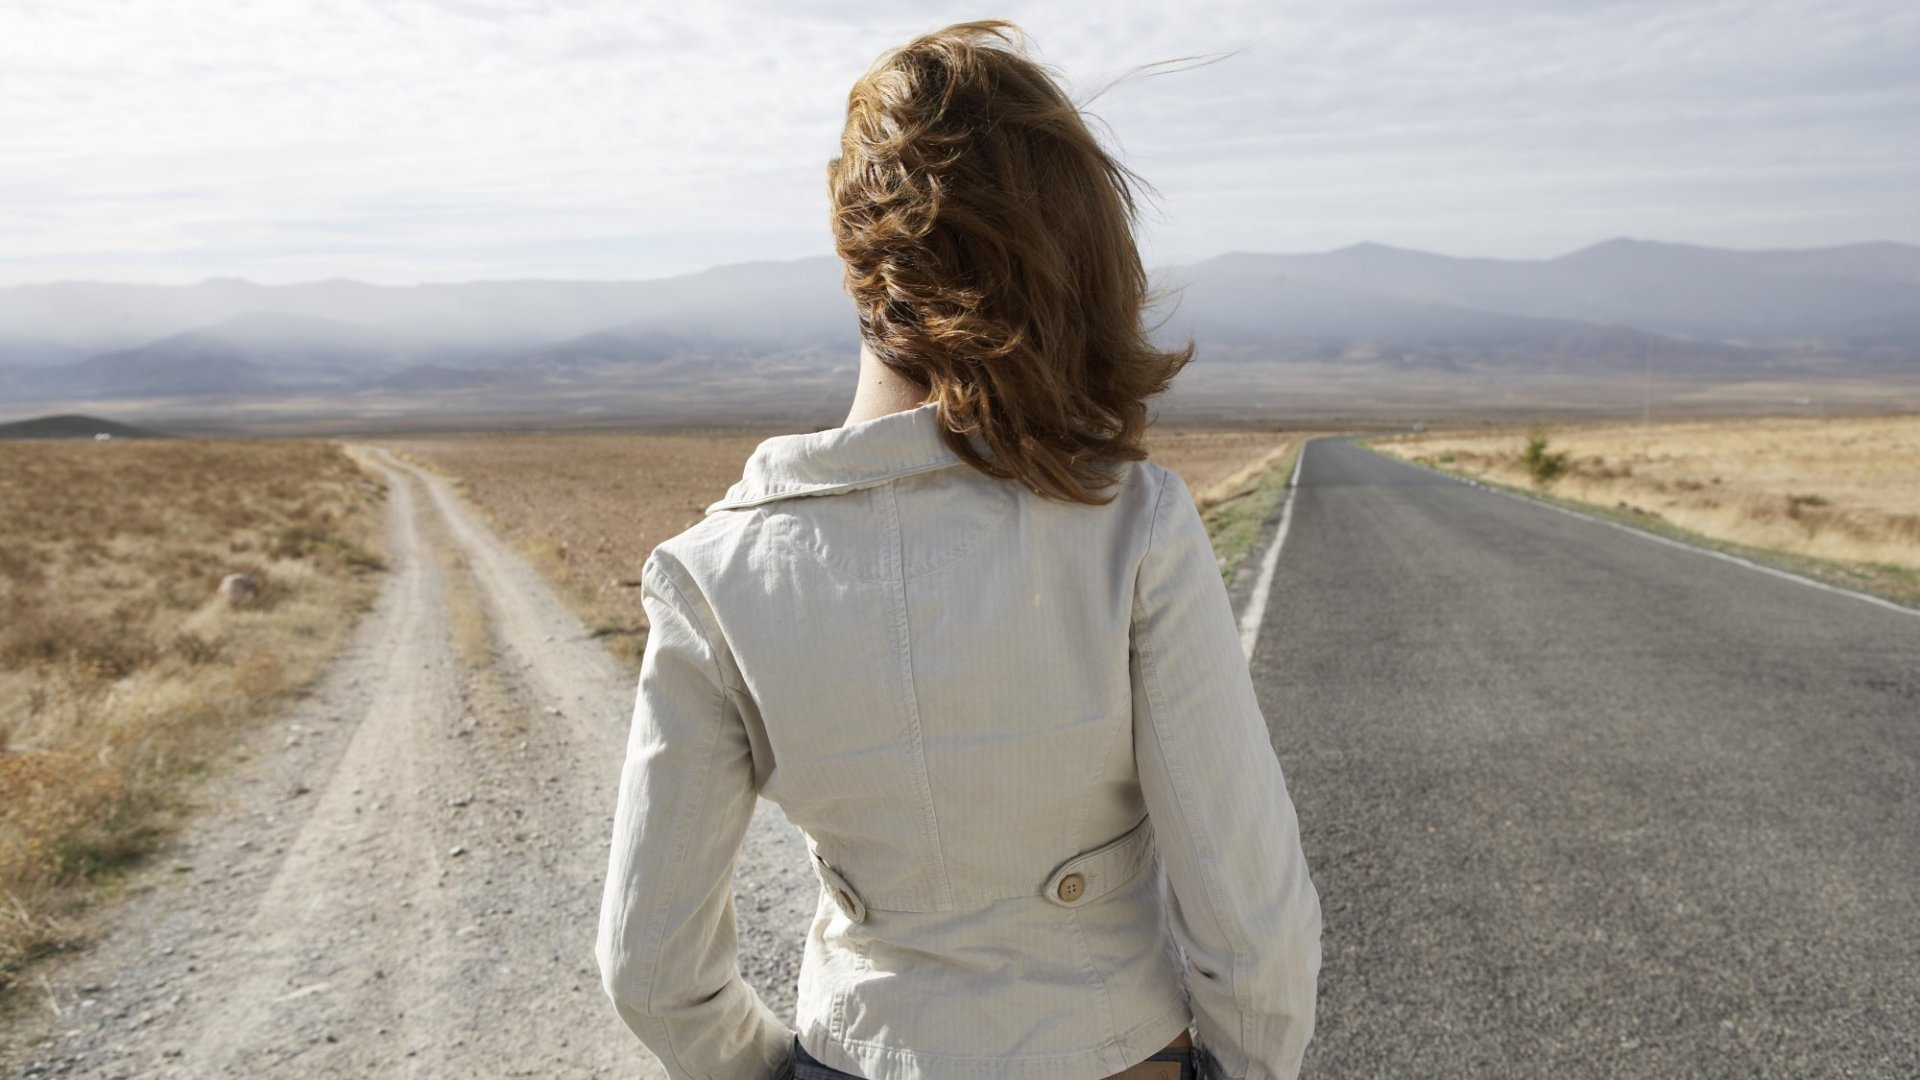 3 Brutal Truths to Face Before Making a Big Career Change